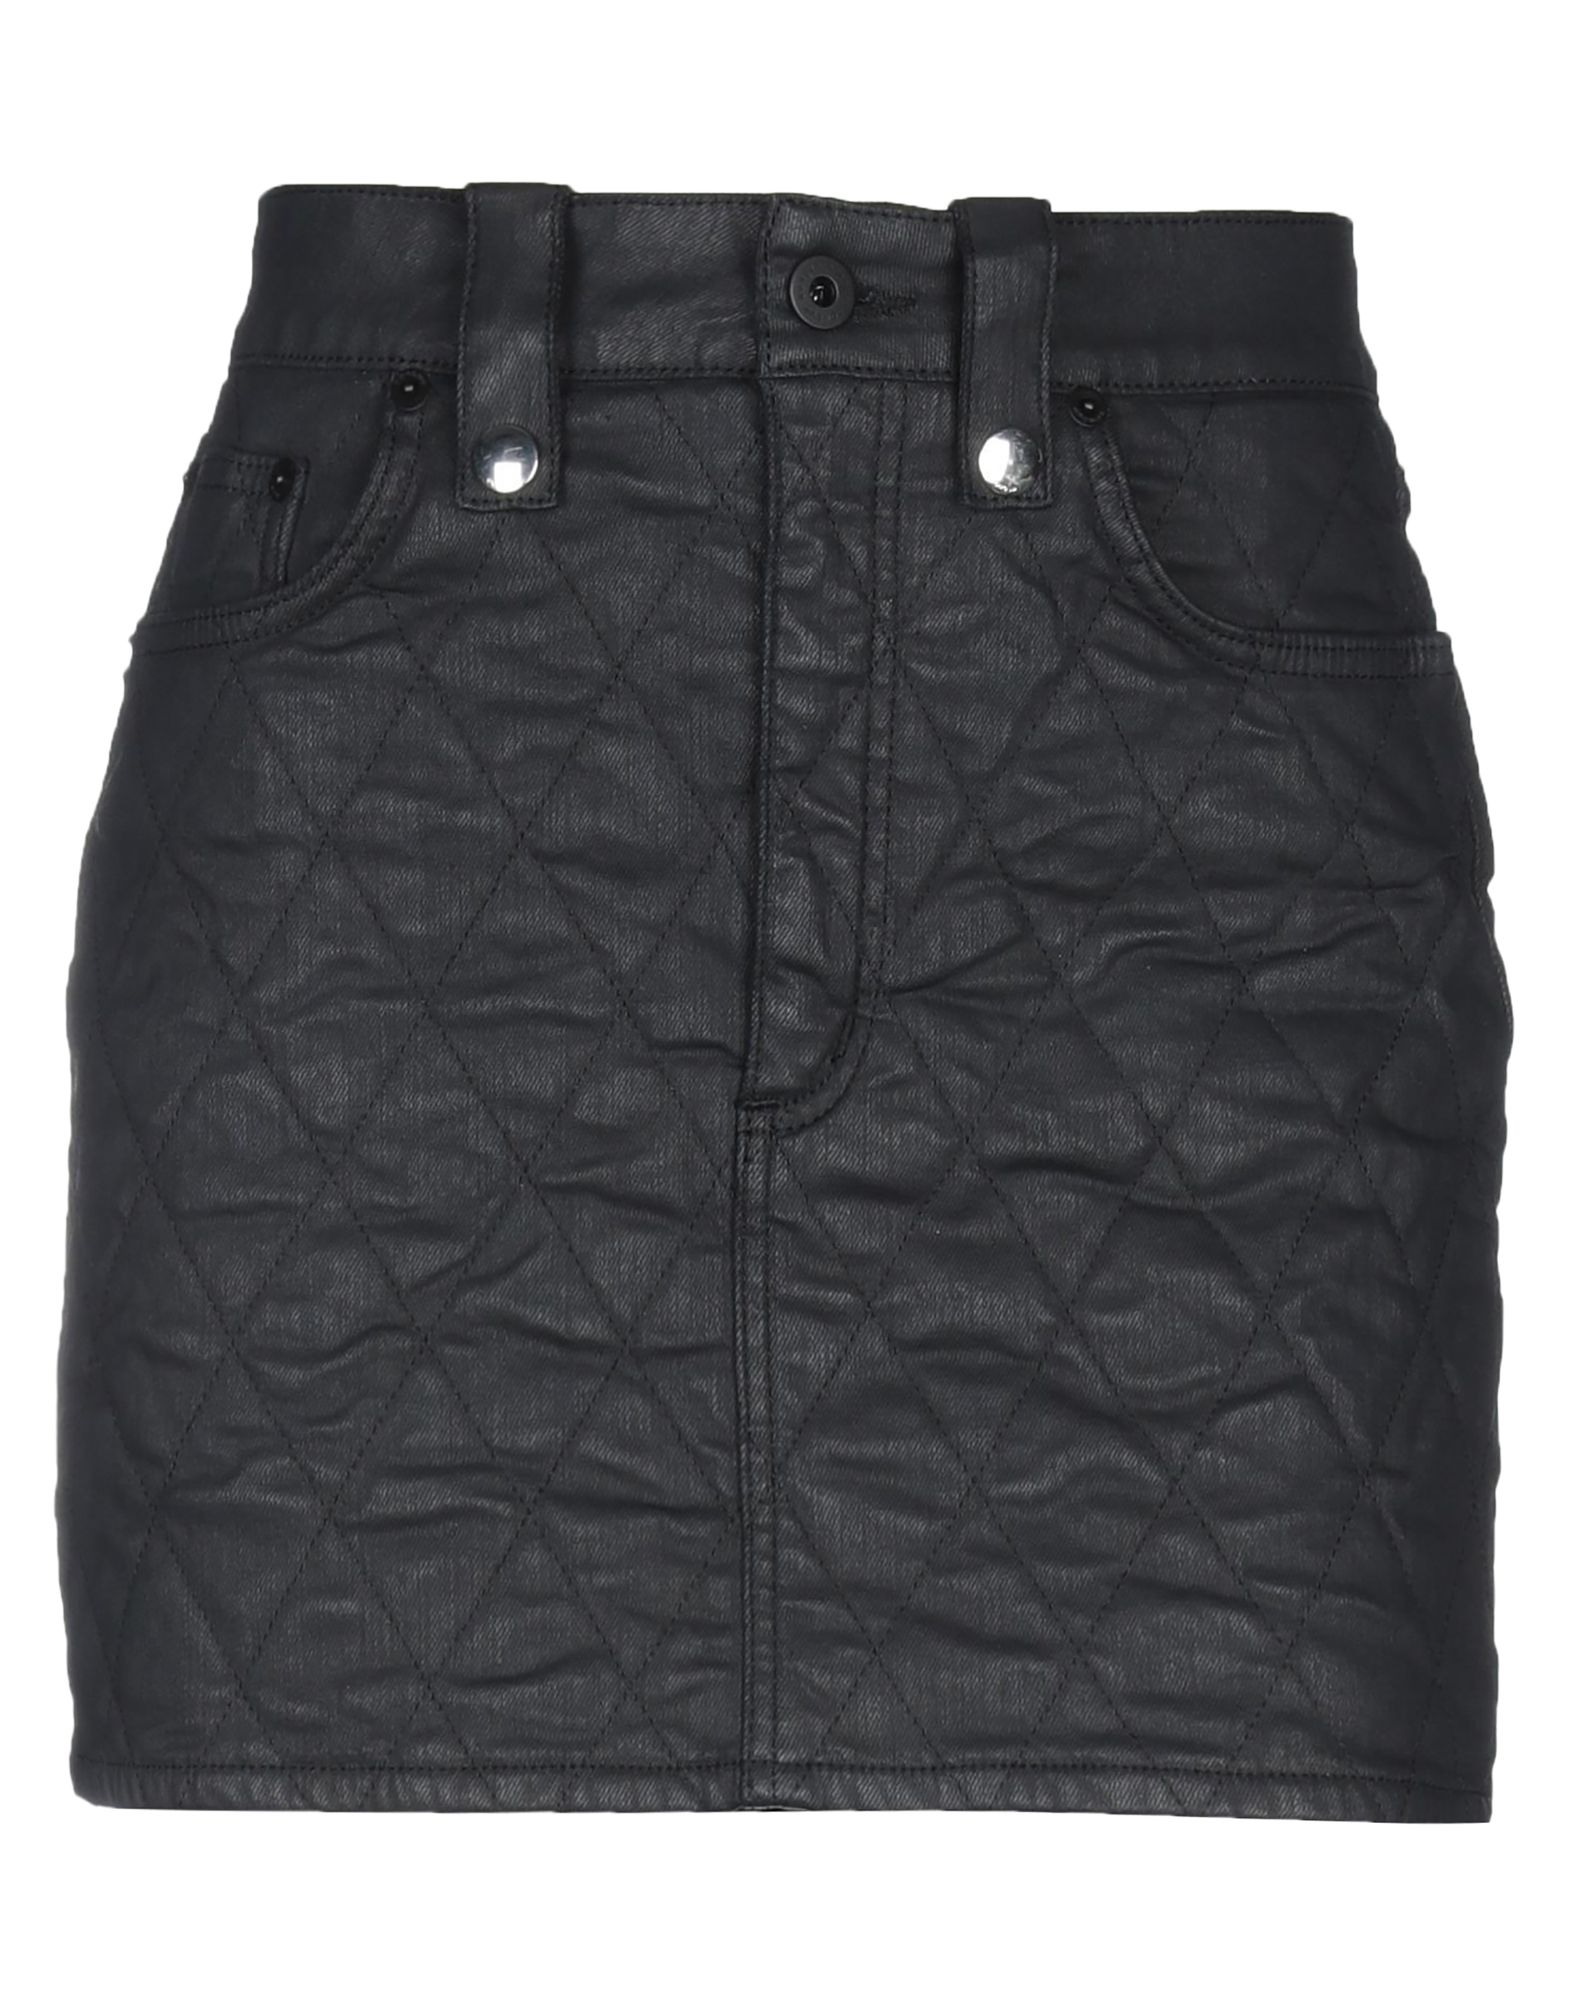 DONDUP Mini skirts. twill, coated effect, logo, solid color, multipockets, unlined, stretch. 69% Cotton, 29% Polyamide, 2% Elastane